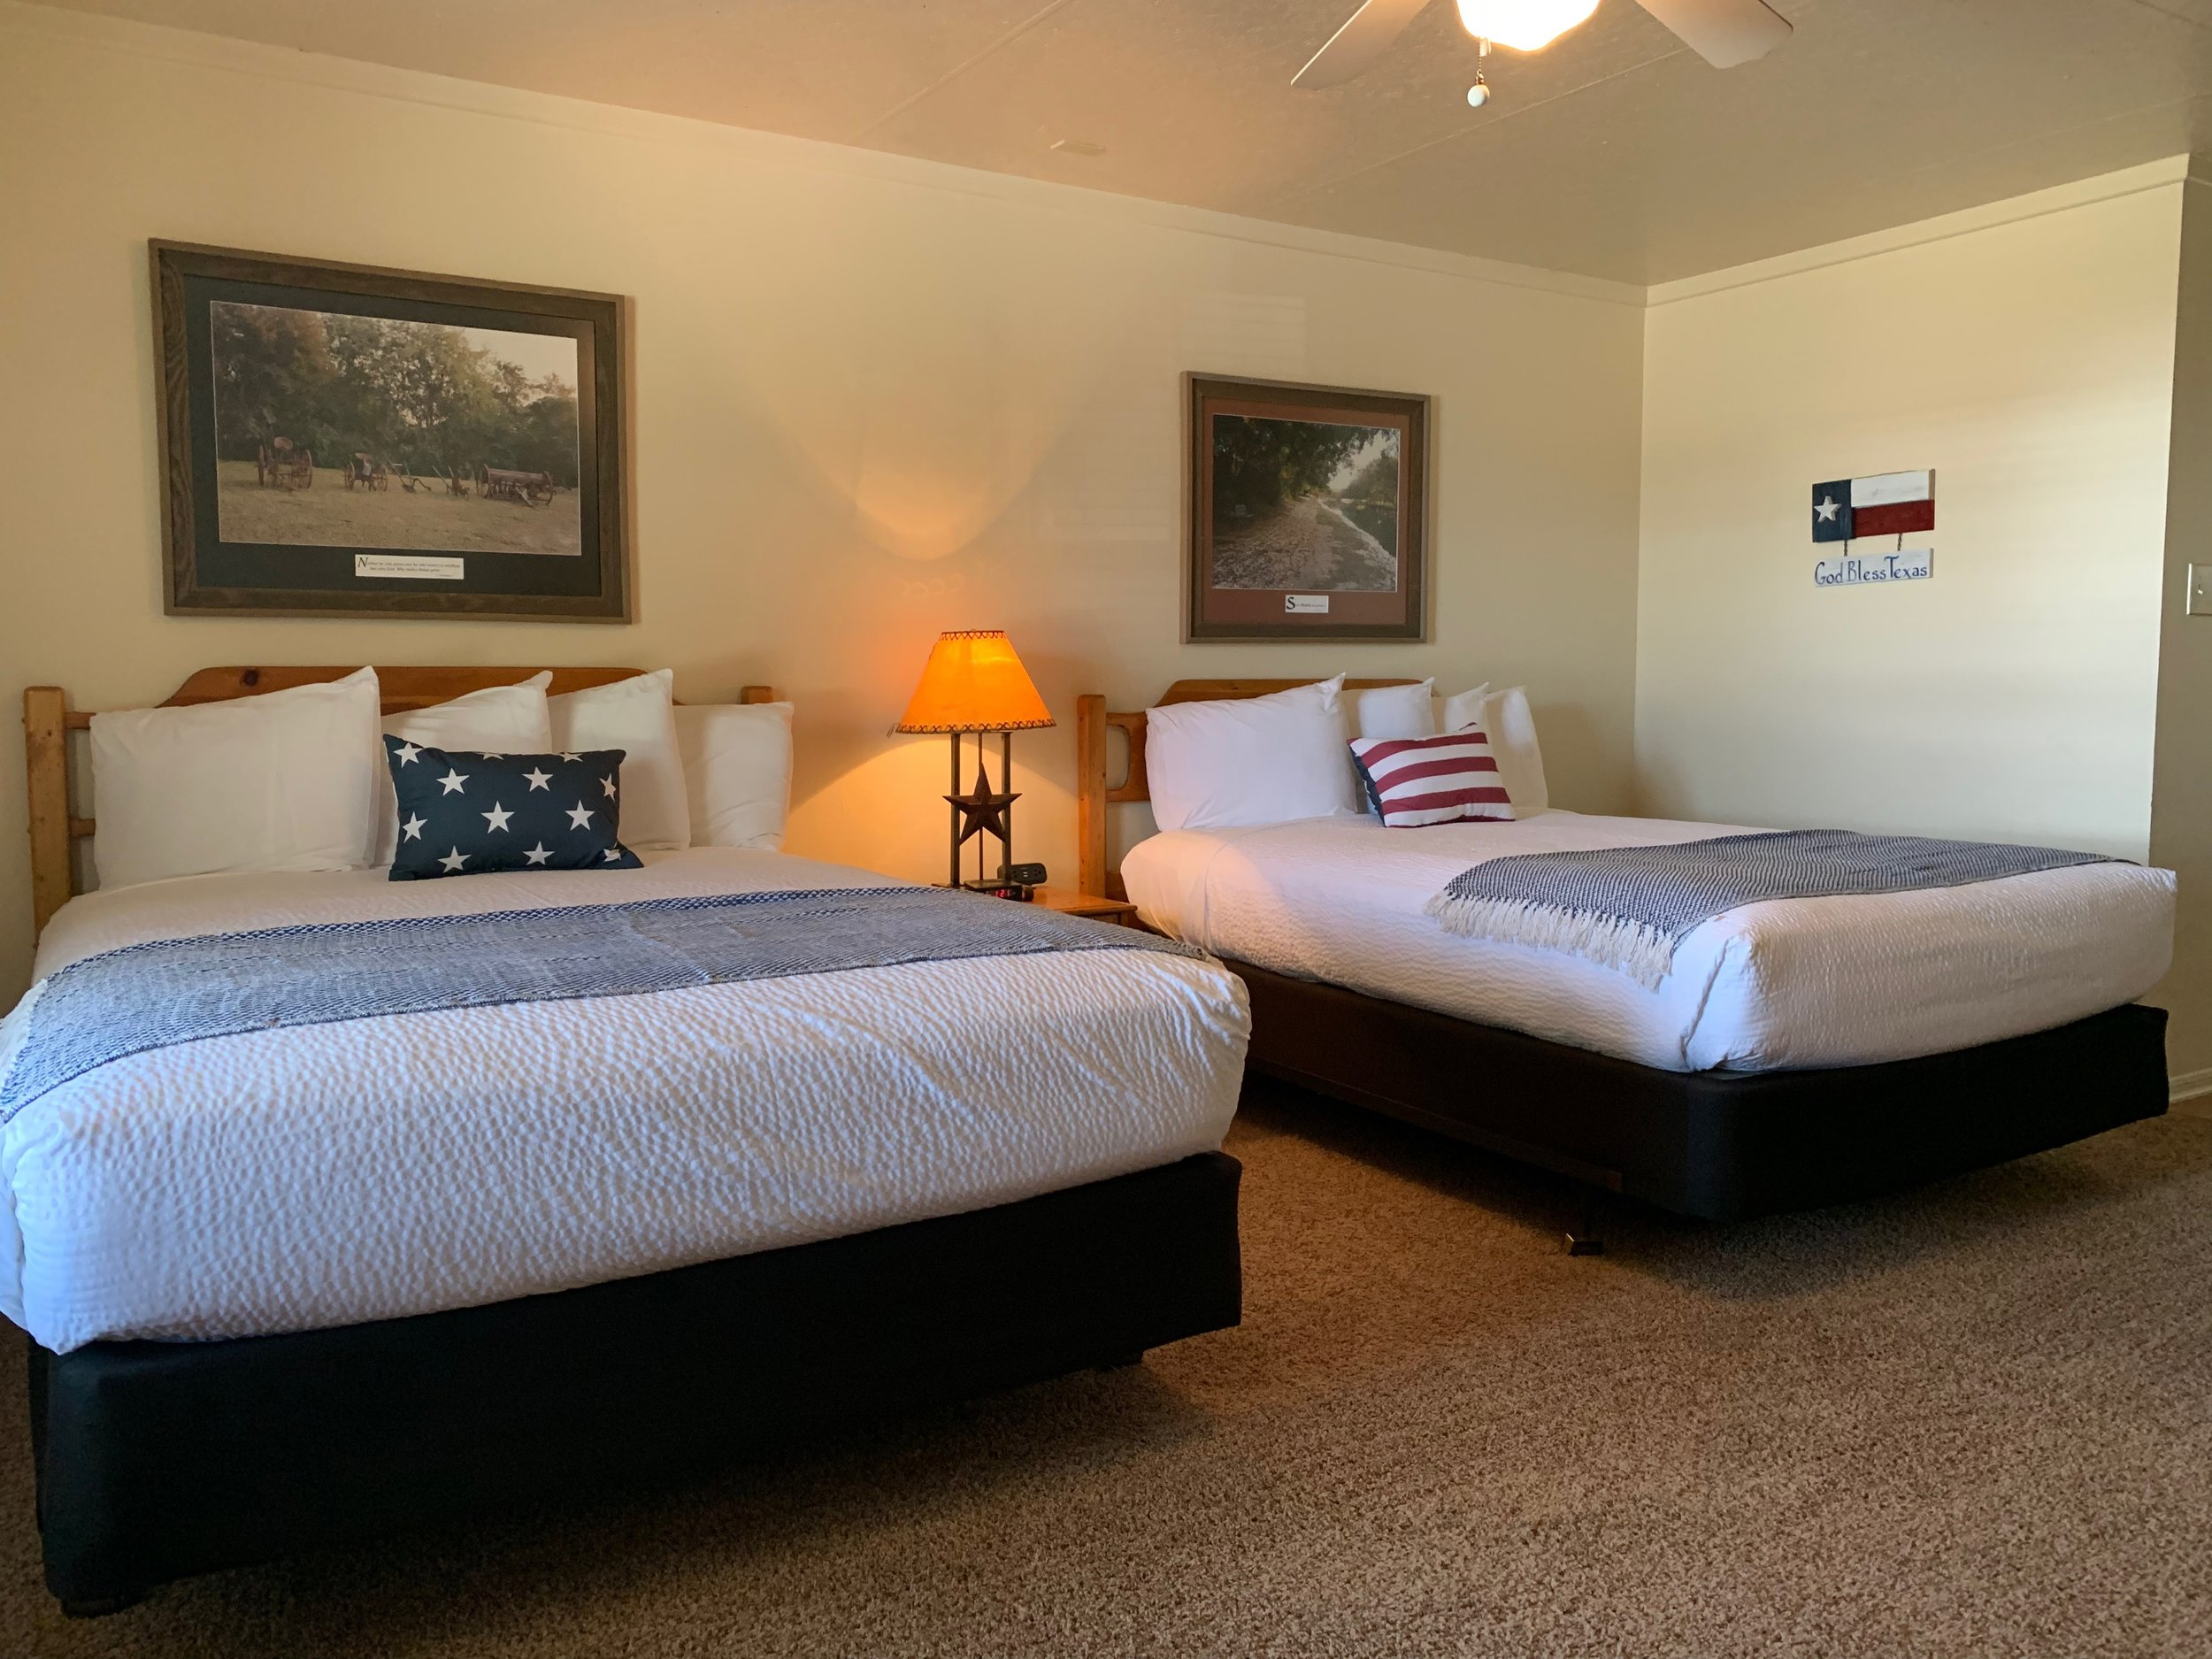 Texas Suites - Texas provides 5 individual spacious suites with private entrances to the outside. Each room has 2 queen beds, a private bath, and a kitchenette. The rooms at Texas are centrally located near huge oak trees and overlook the old Chisholm Ostrich Farm and rec courts. [Accommodates 5-20 people]